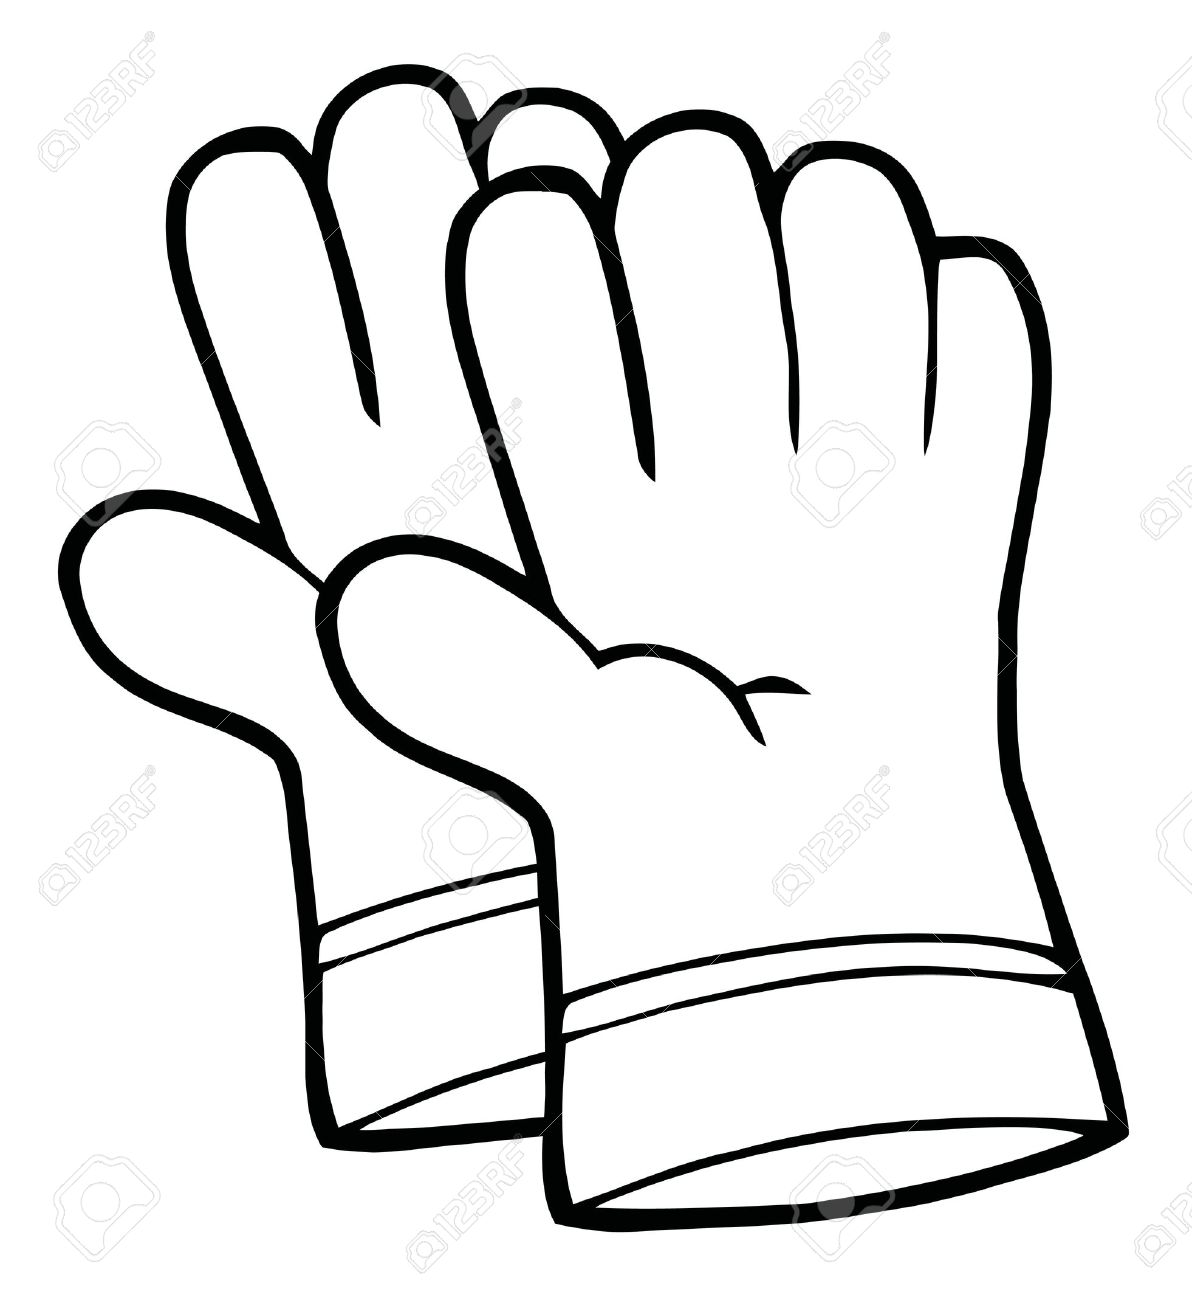 Coloring book outlines - Coloring Page Outline Of A Pair Of Gardening Hand Gloves Stock Vector 7849213